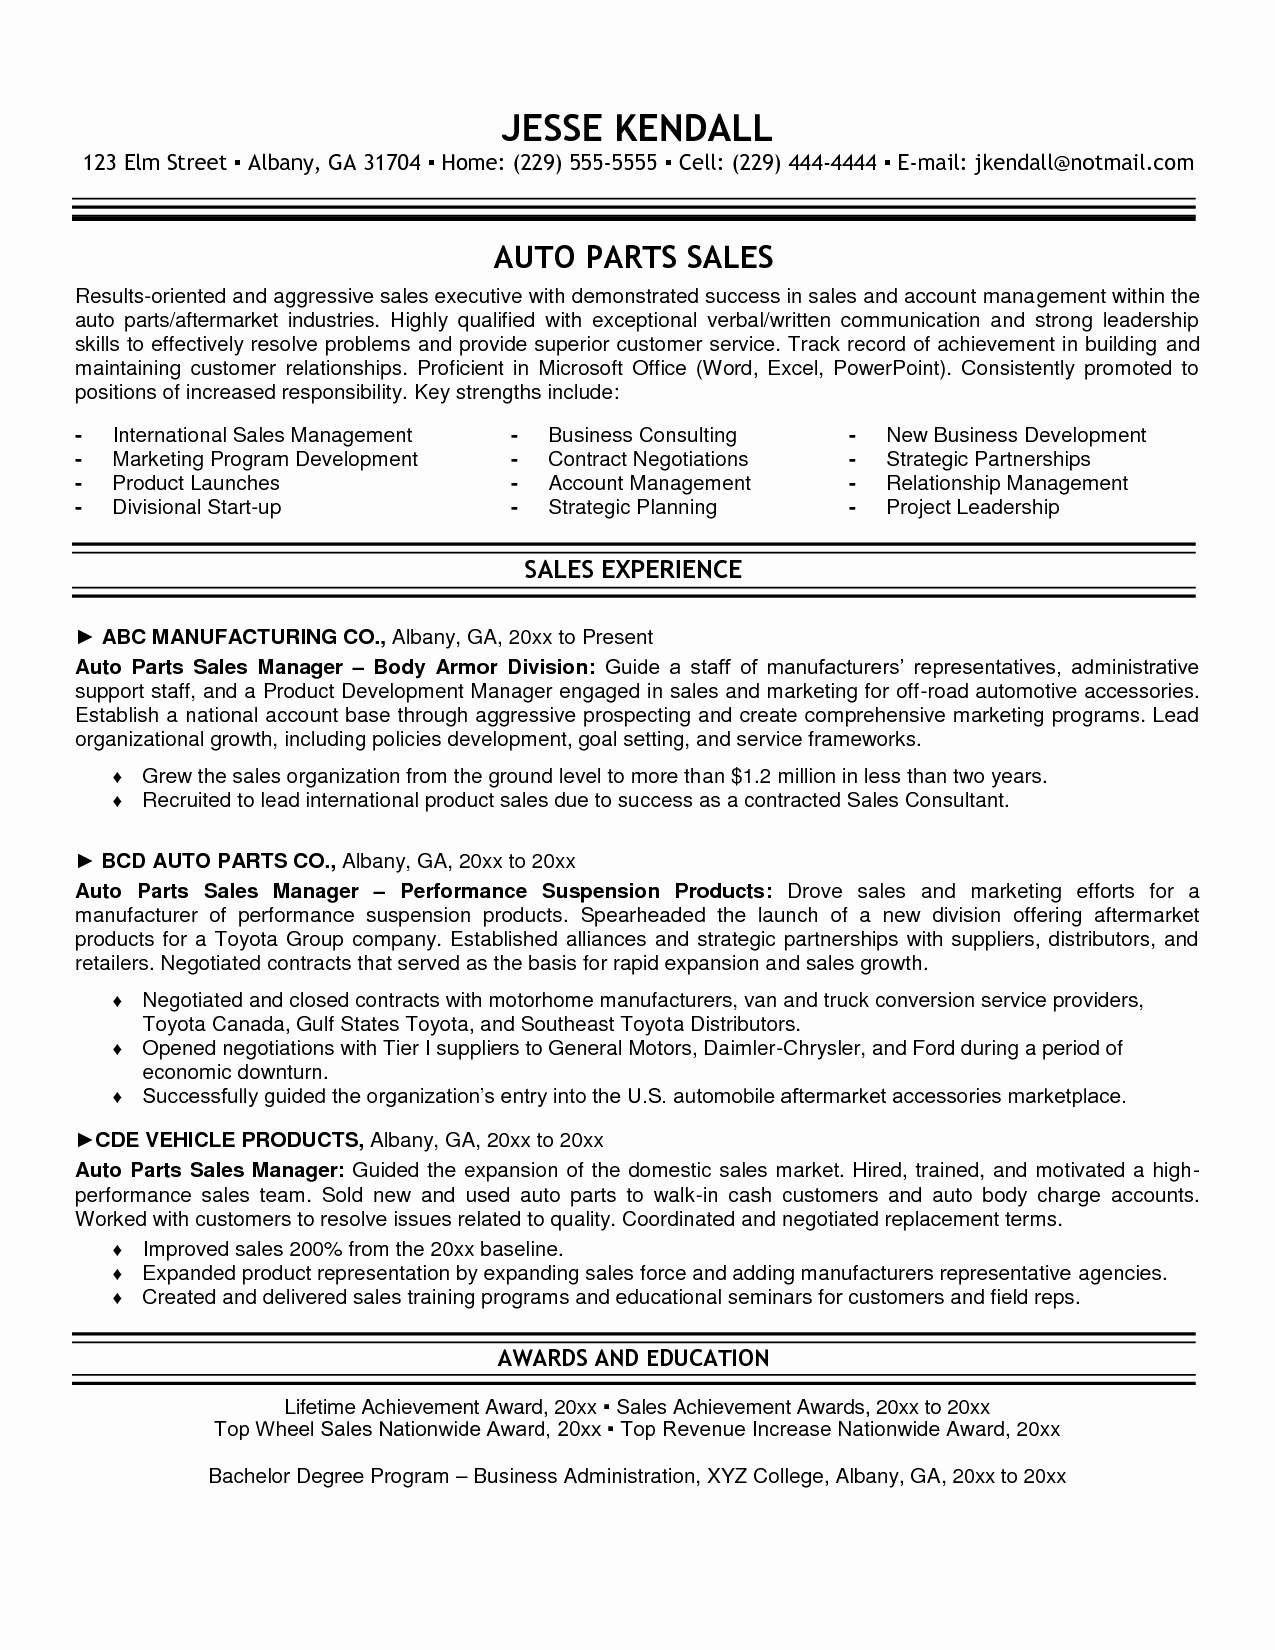 Valid Cover Letter for Sales Consultant Job Resume